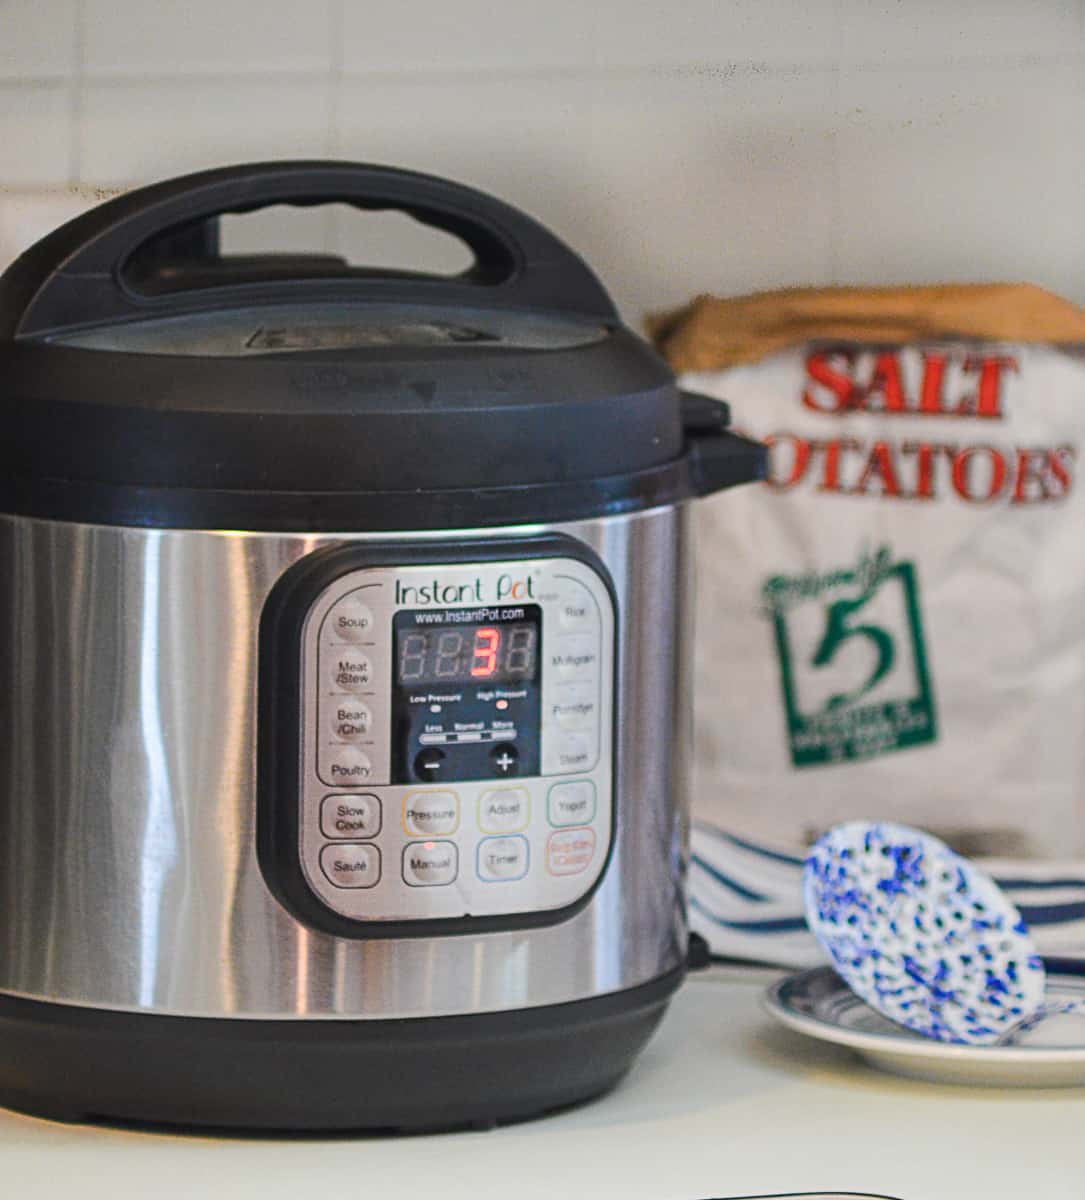 An Instant Pot ona kitchen counter top,  set for 3 minutes high pressure to cook Syracuse Salt Potatoes